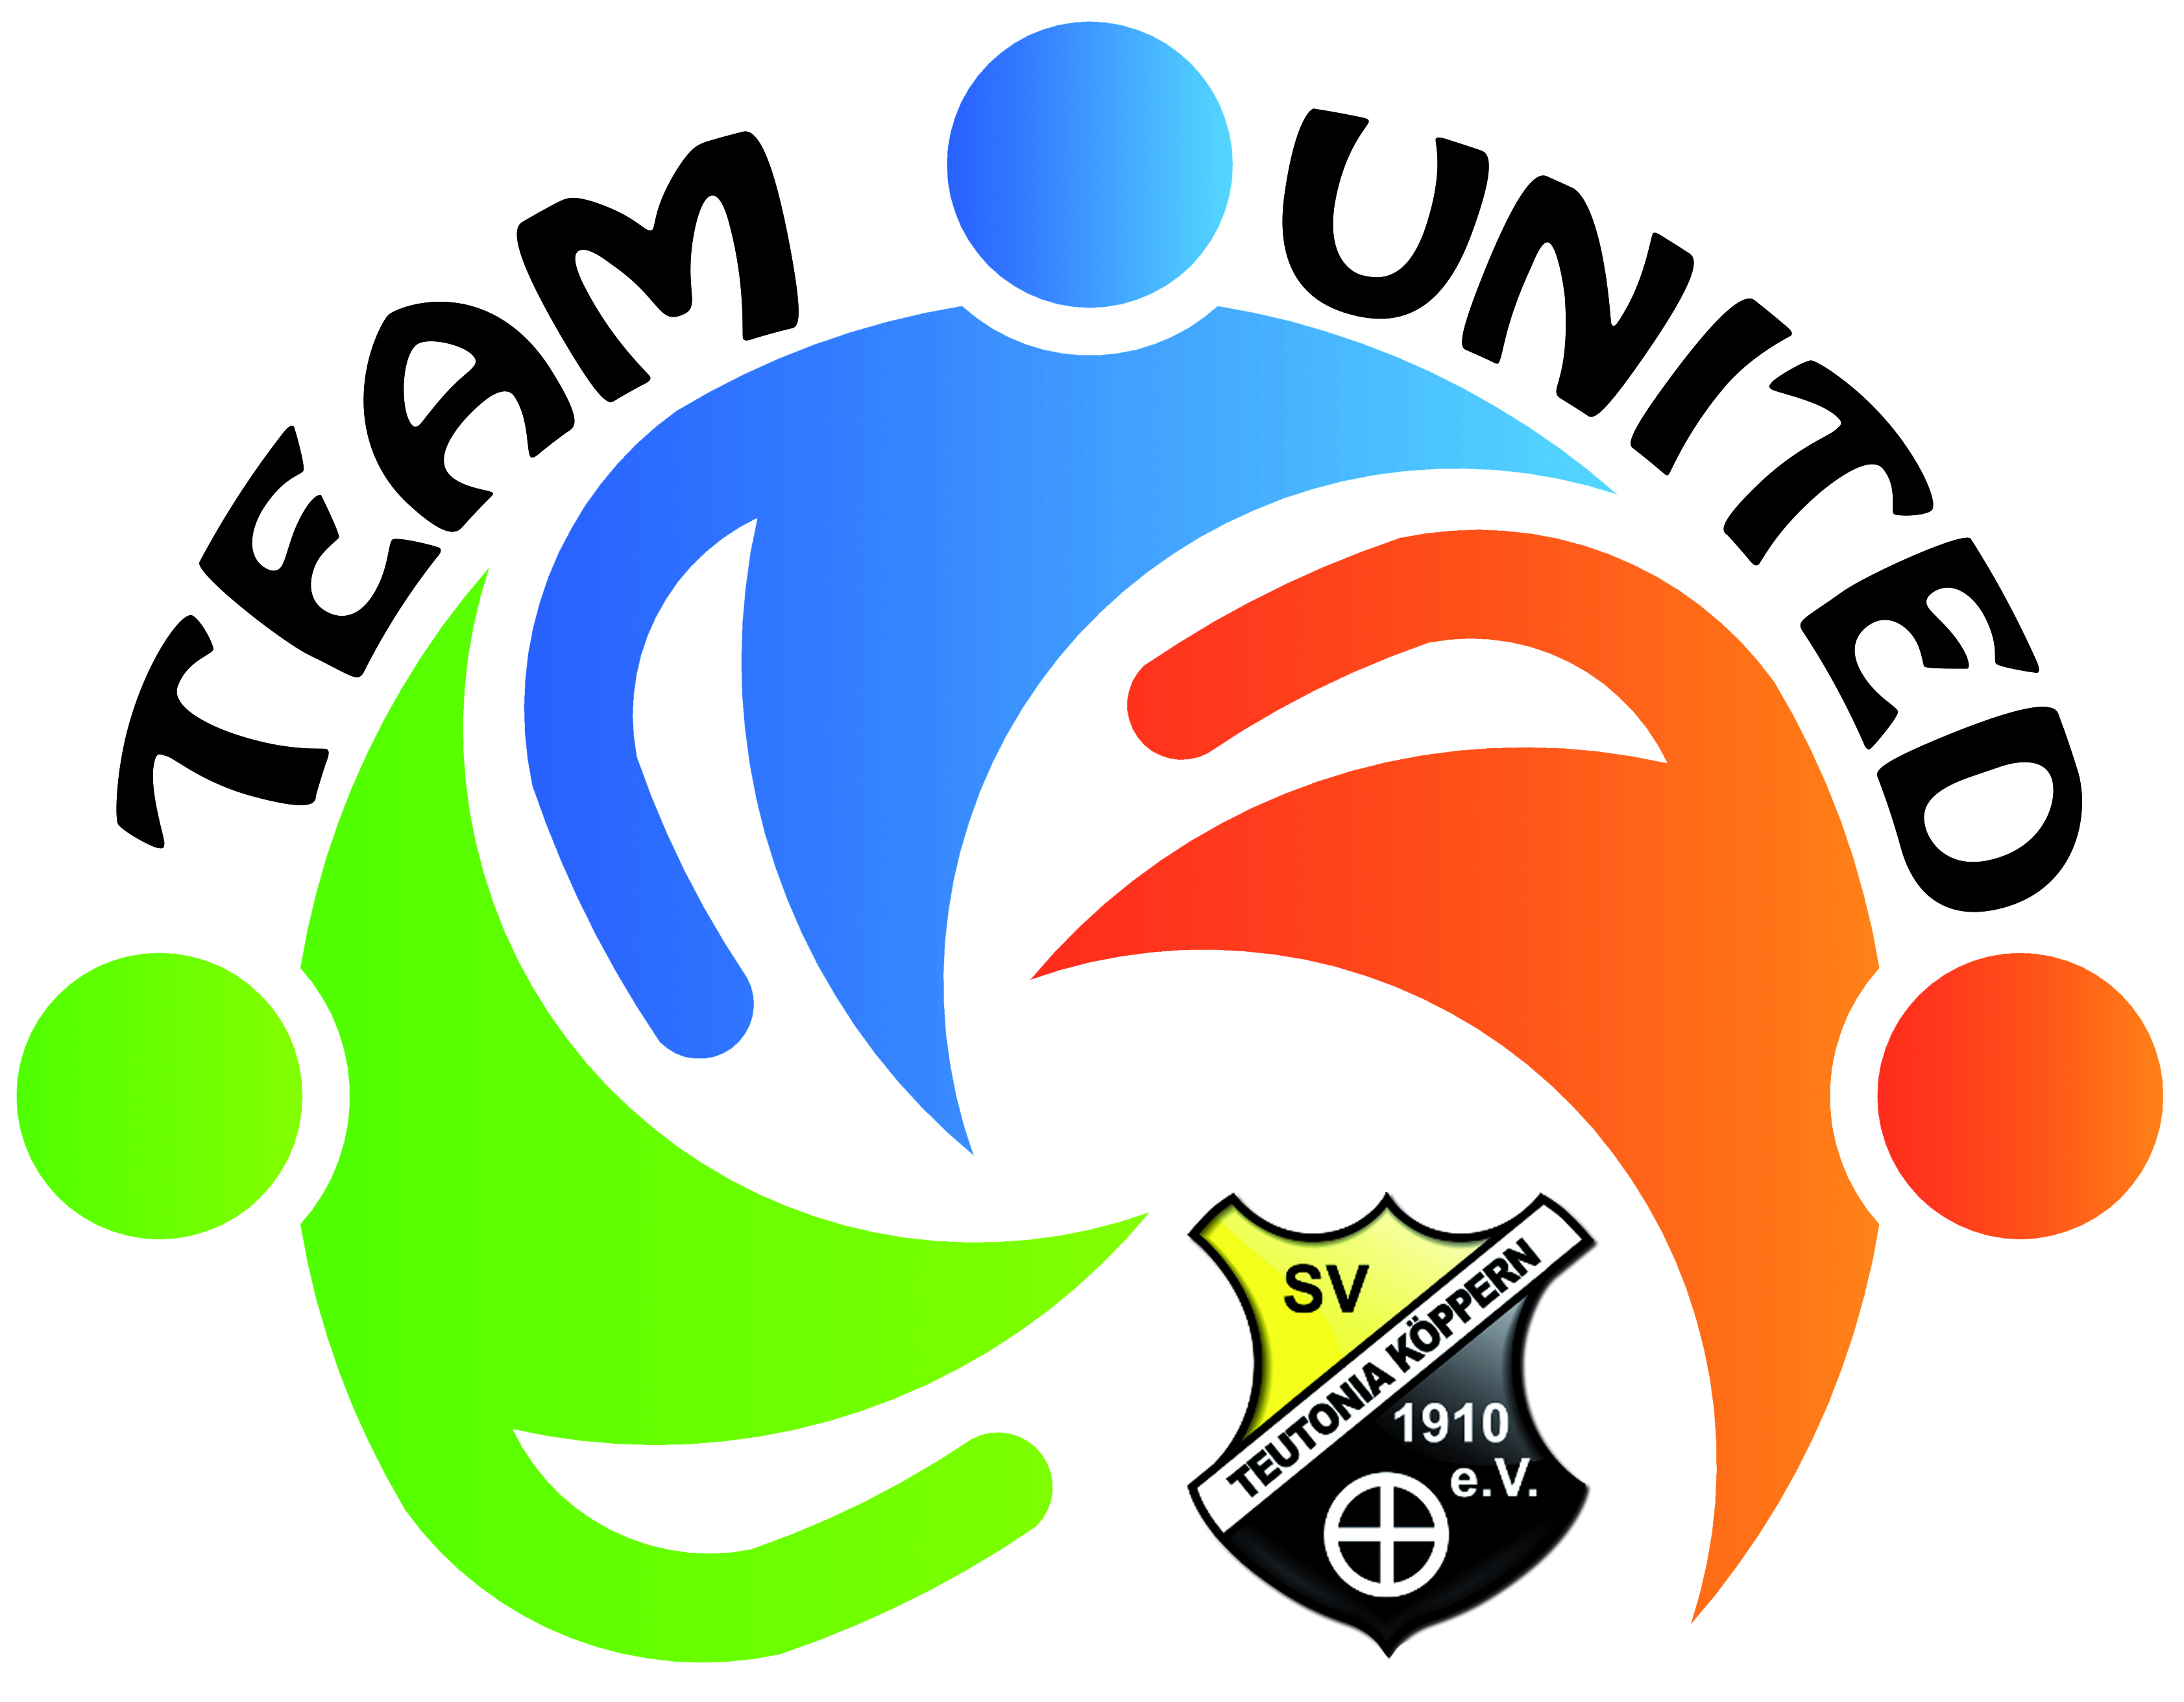 team united logo farbig